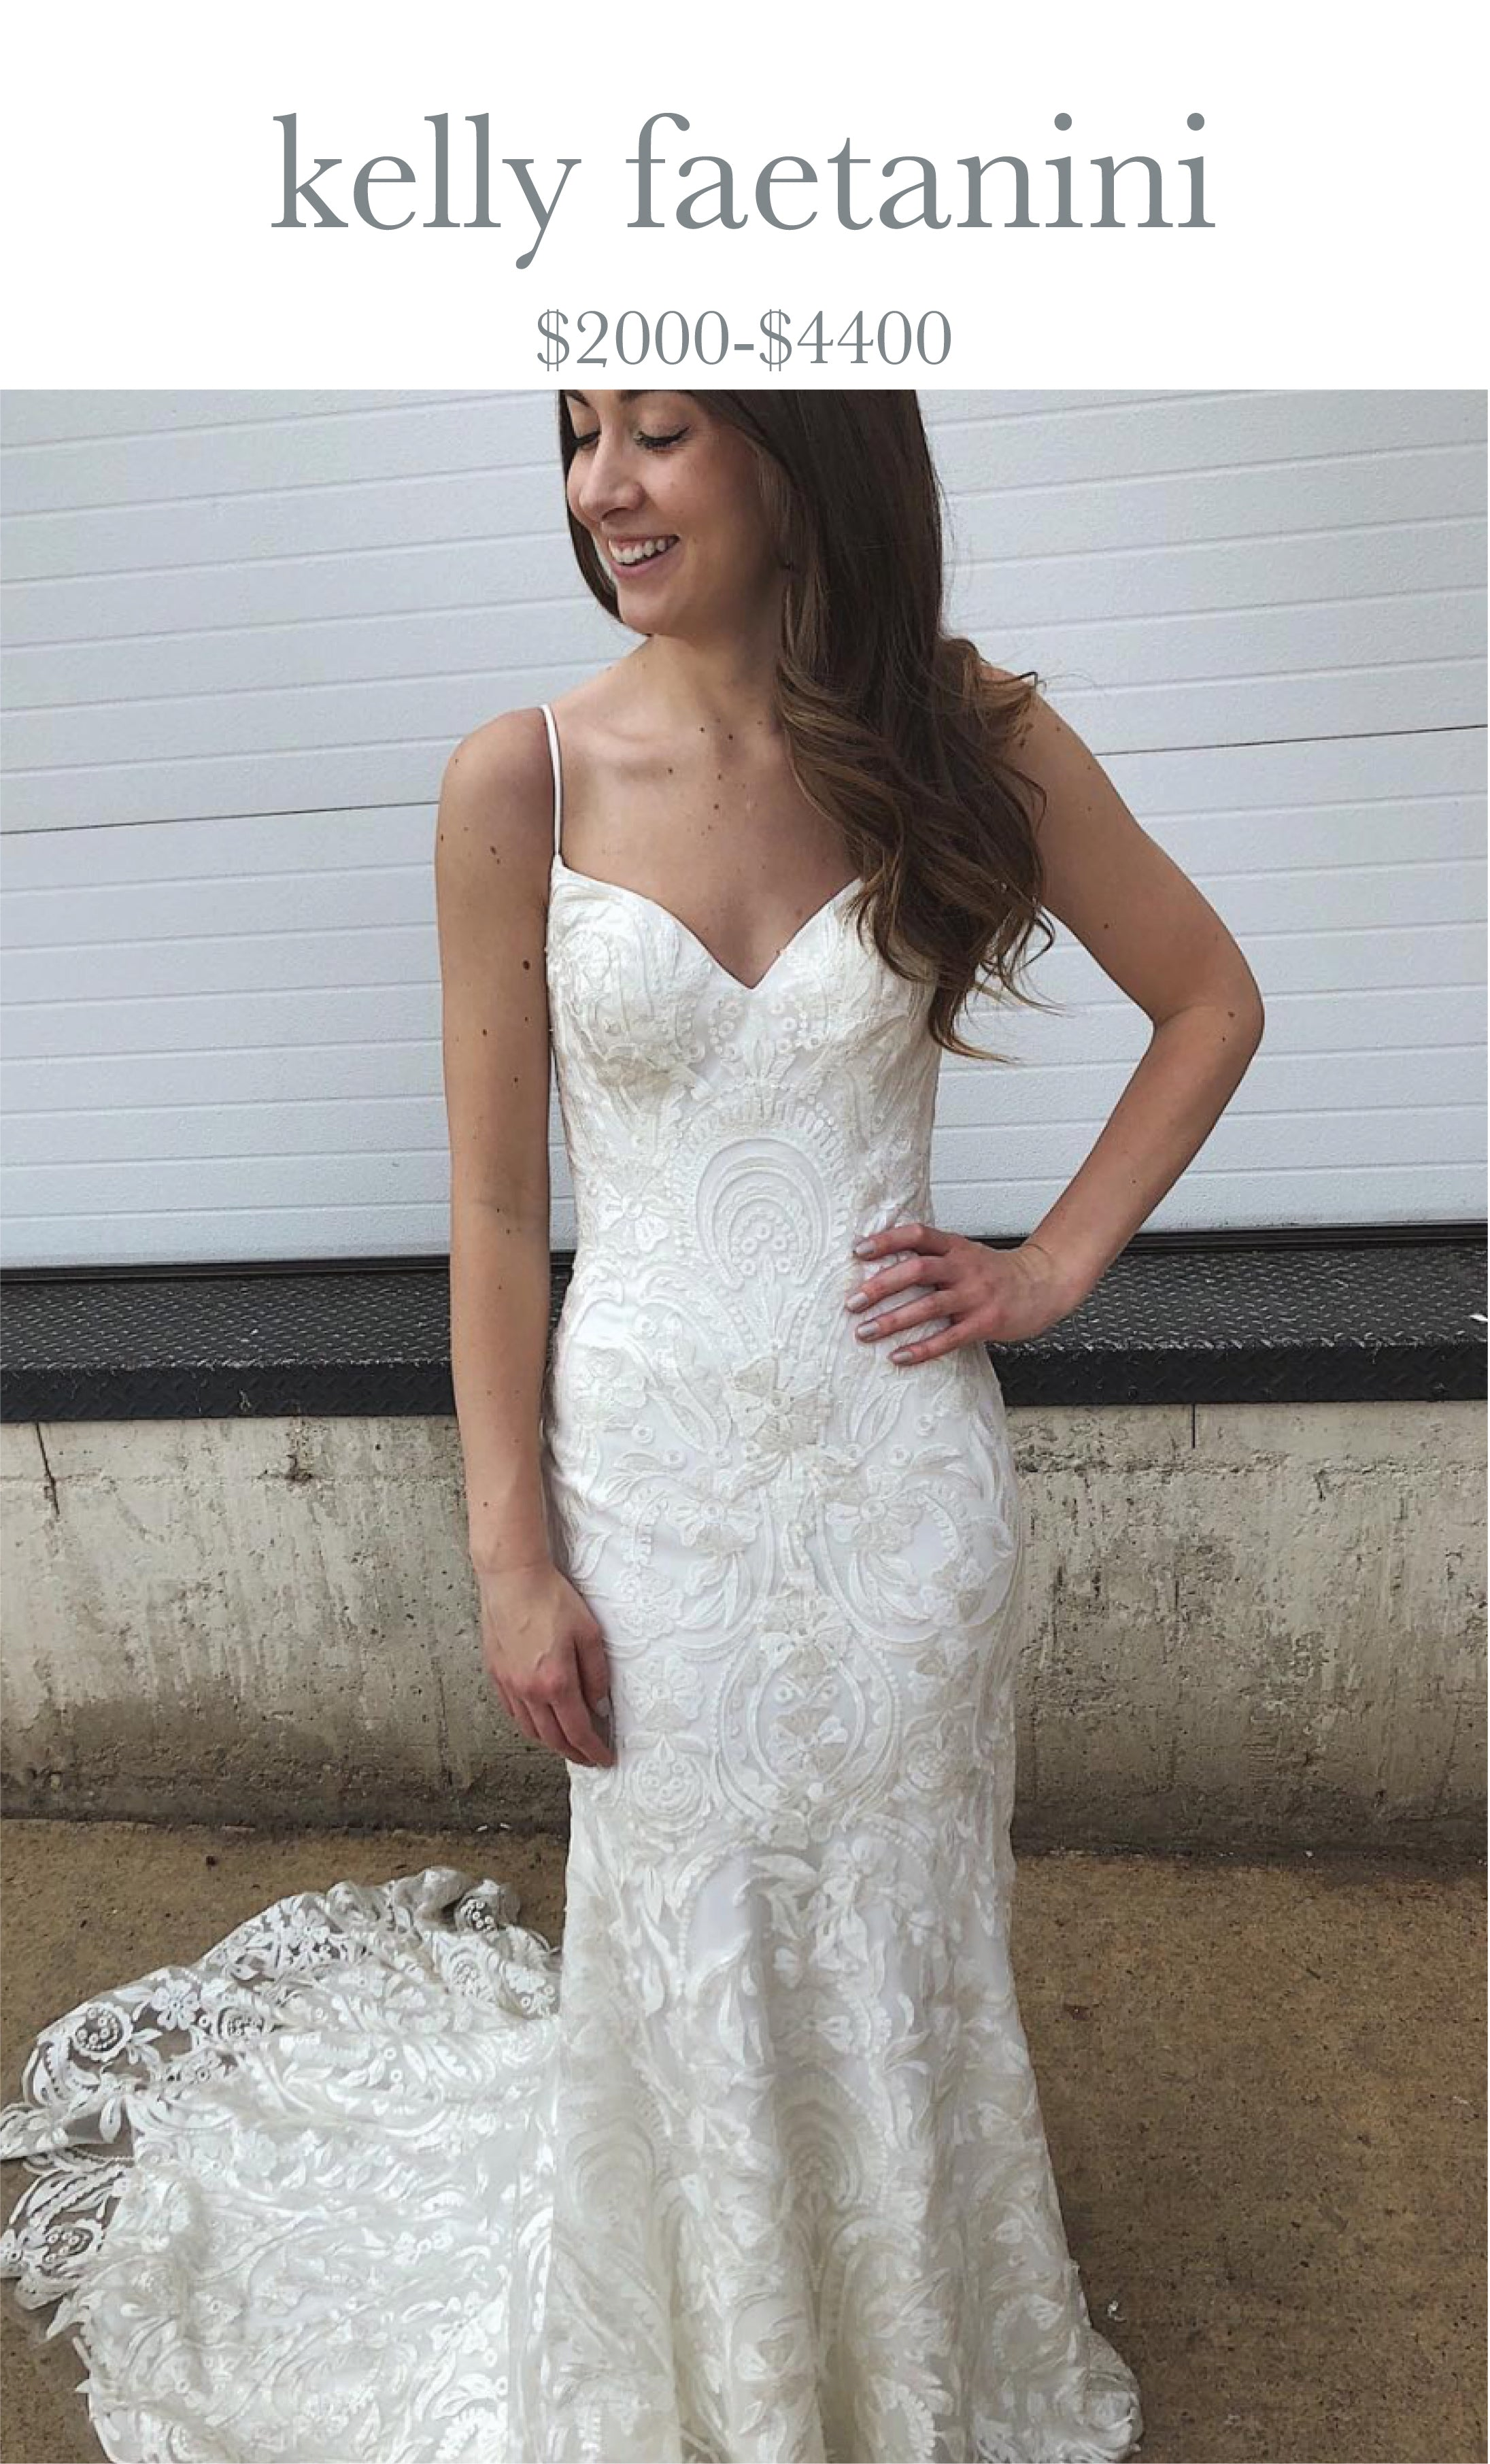 Denver bride in Kelly Faetanini dress